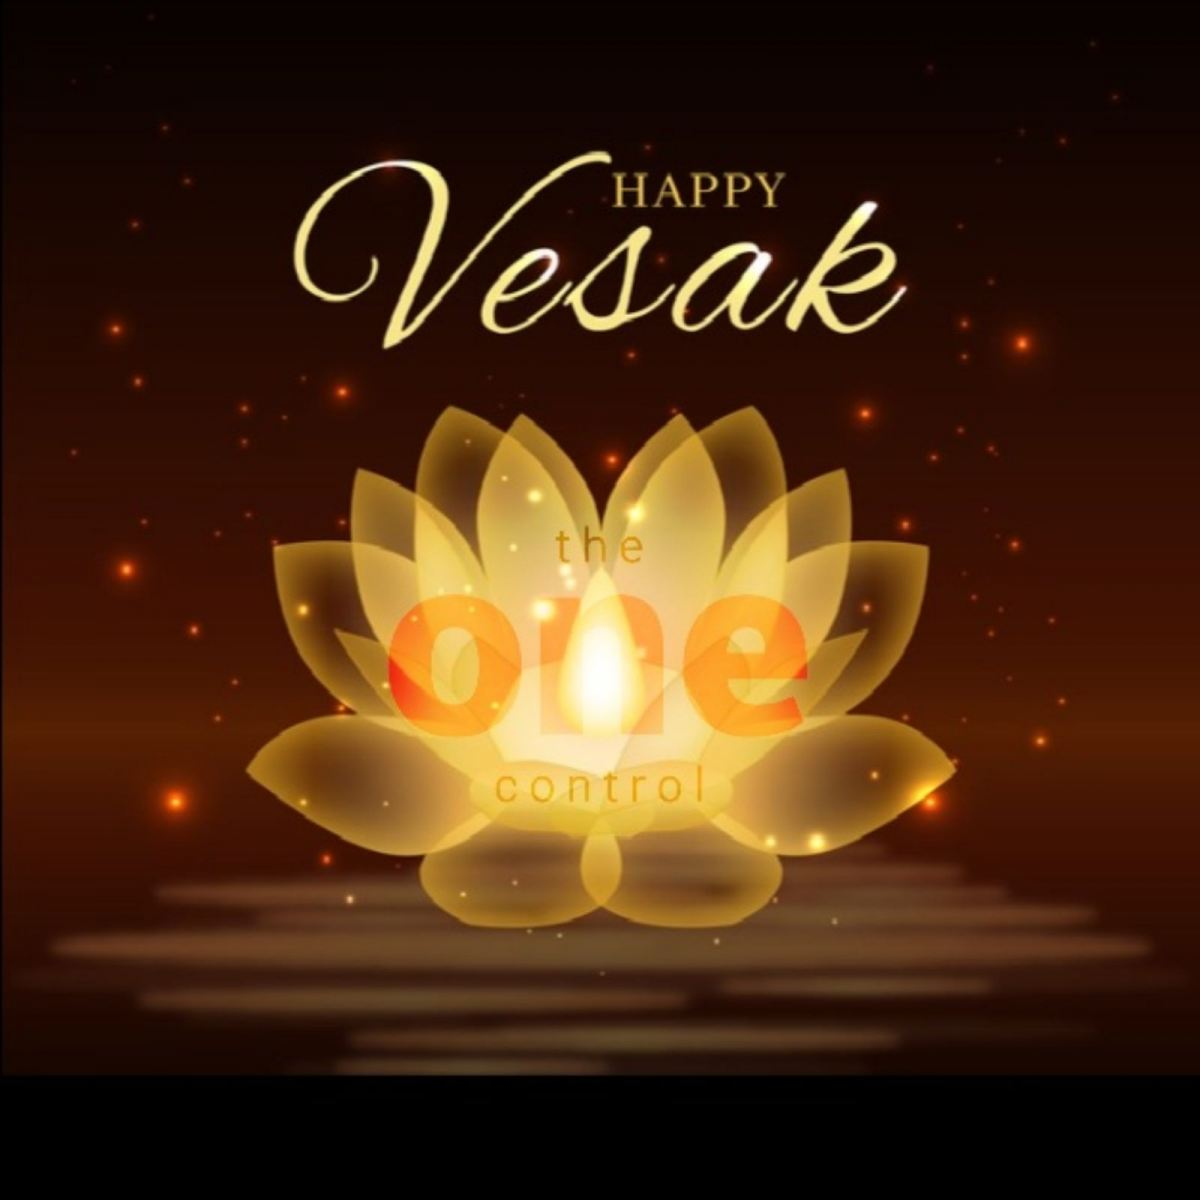 Happy Vesak Day to you and family.